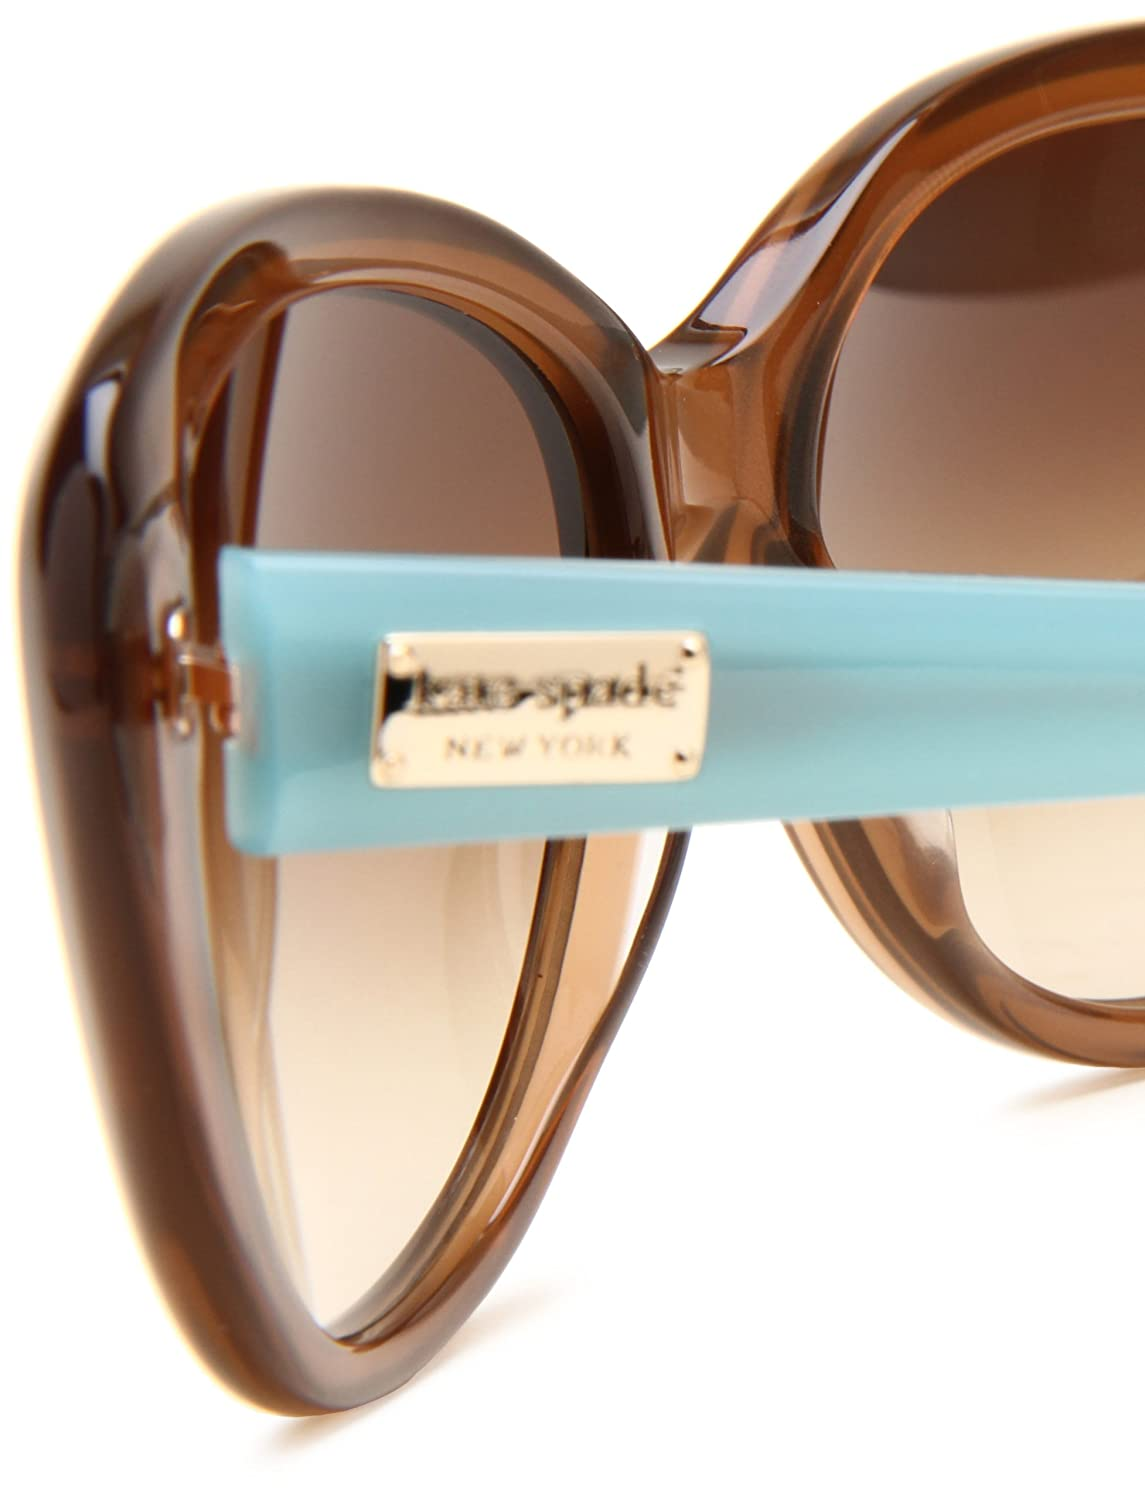 e3db0f88b4 KATE SPADE ANGELIQUE S Sunglasses 0JVC Tan 55-16-135  Amazon.co.uk  Clothing